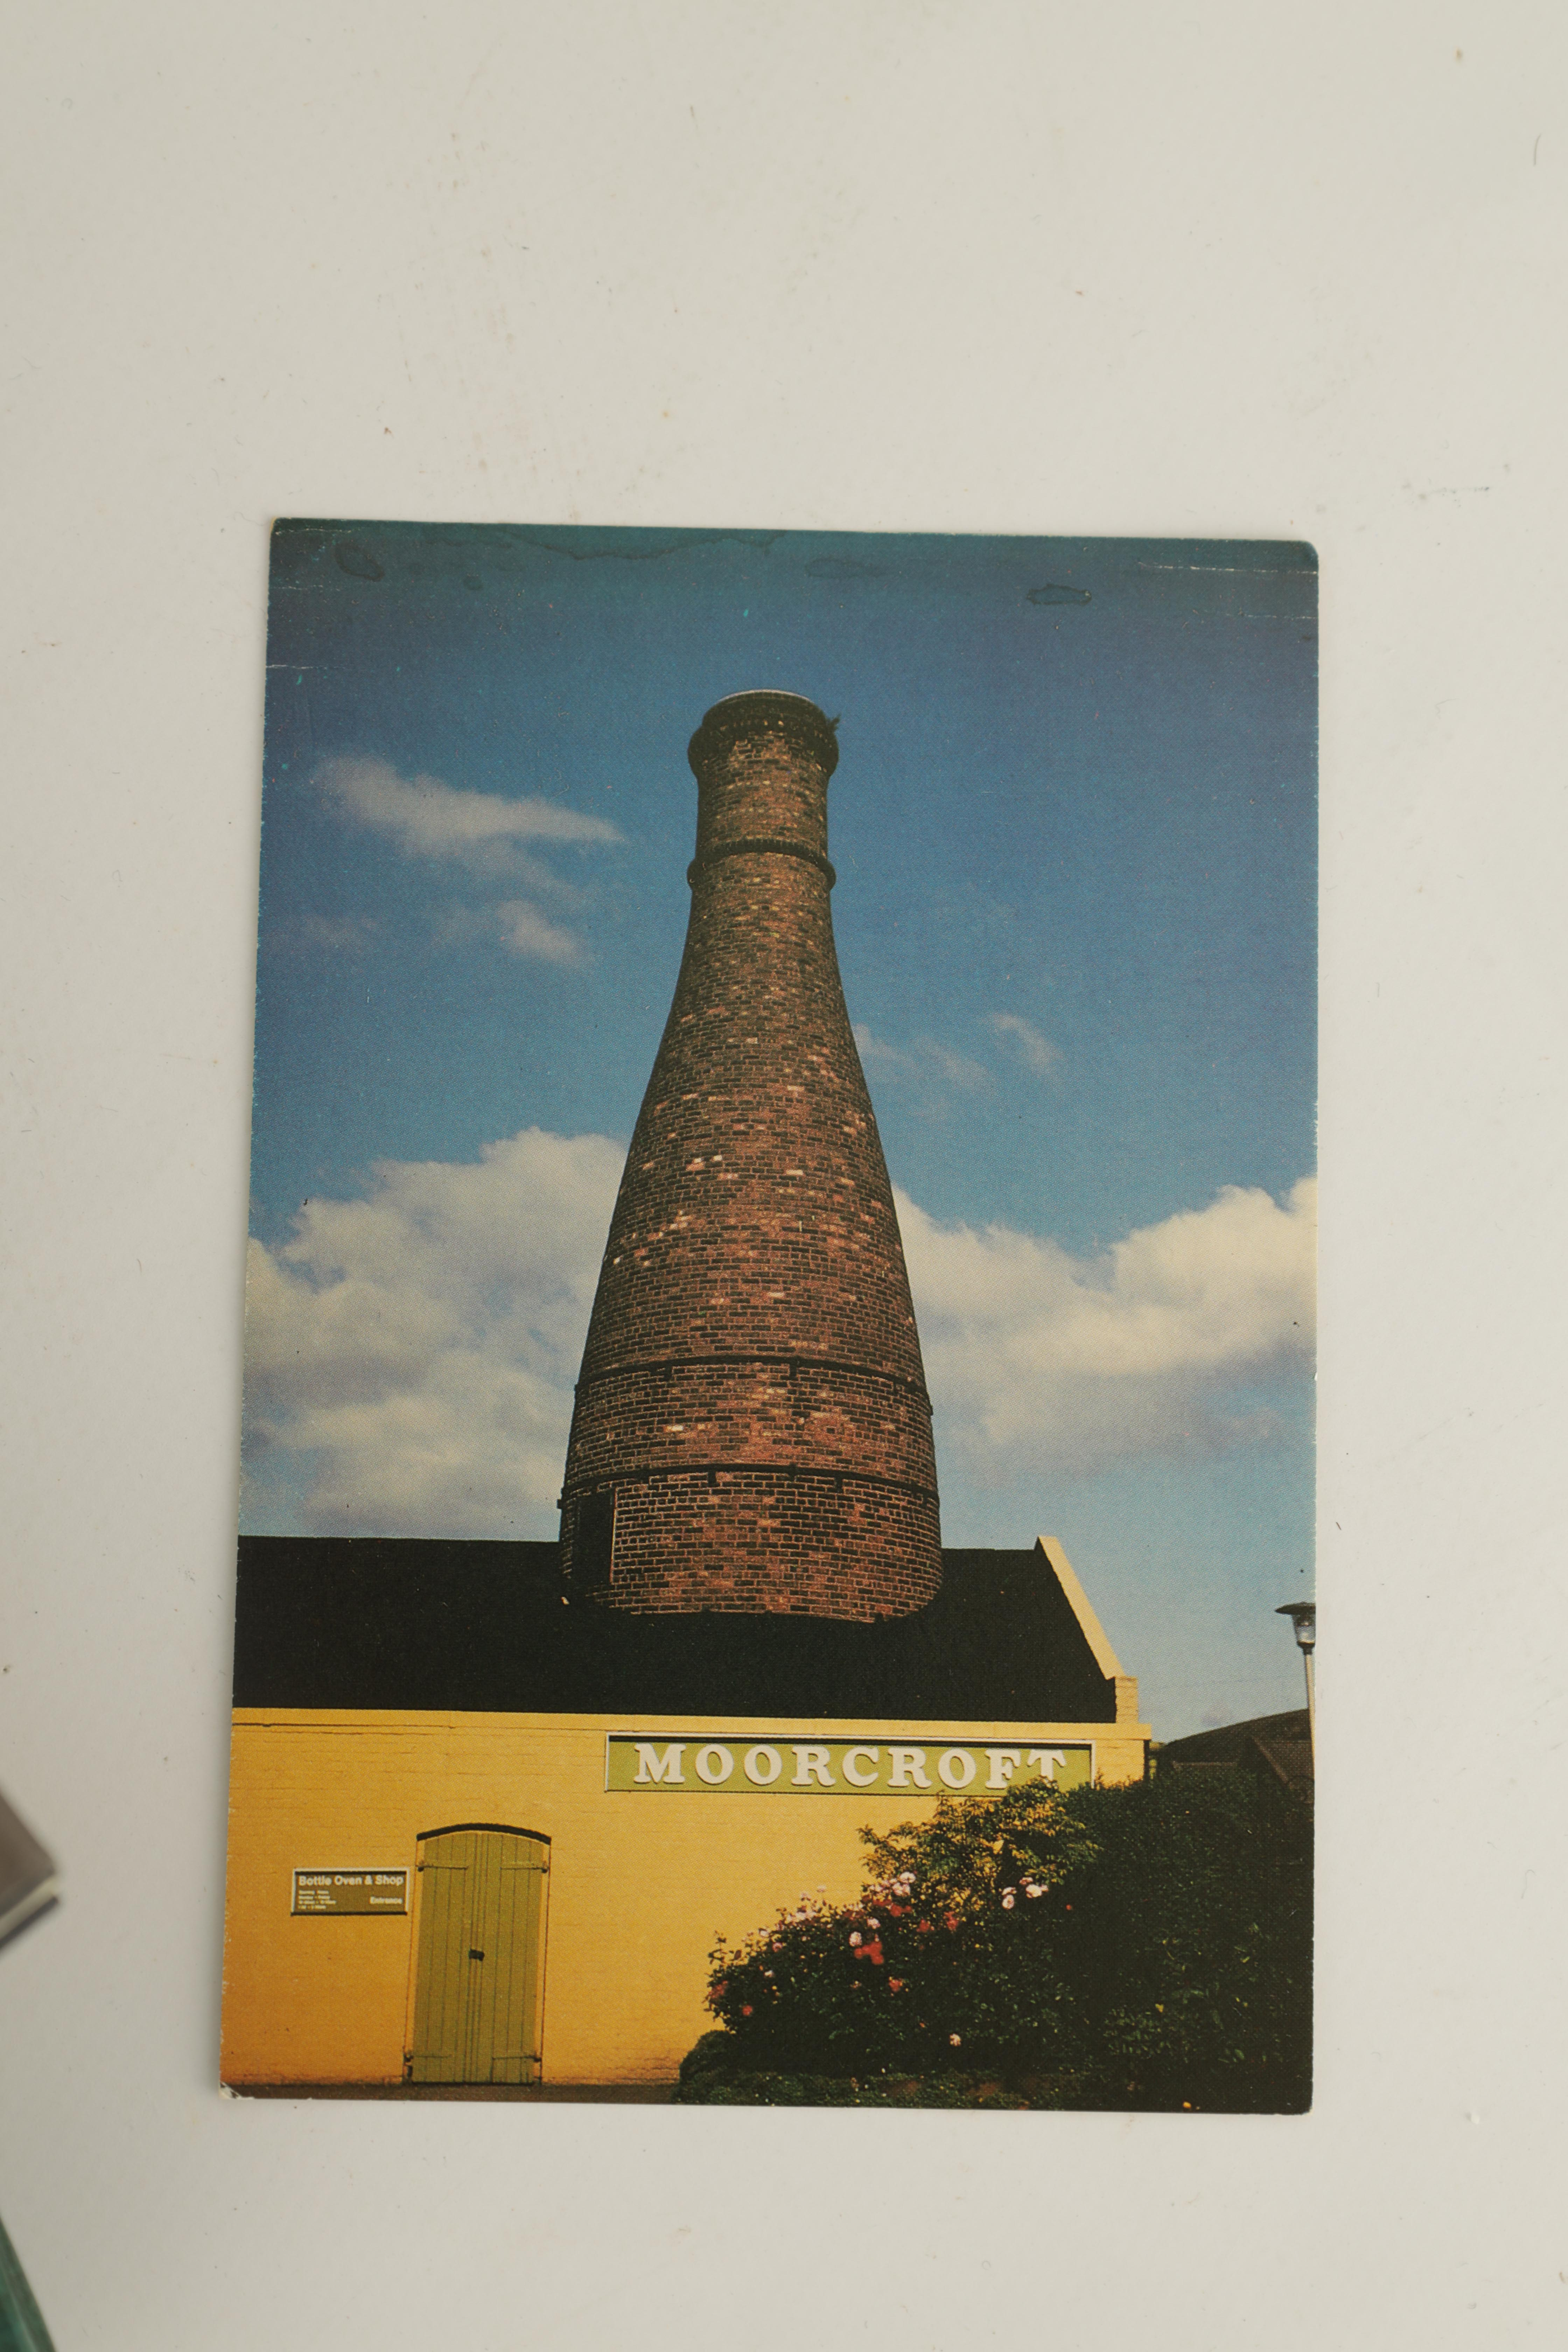 A COLLECTION OF EIGHT CERAMIC REFERENCE BOOKS including Poole pottery by Lesley Haward edited by - Image 7 of 9